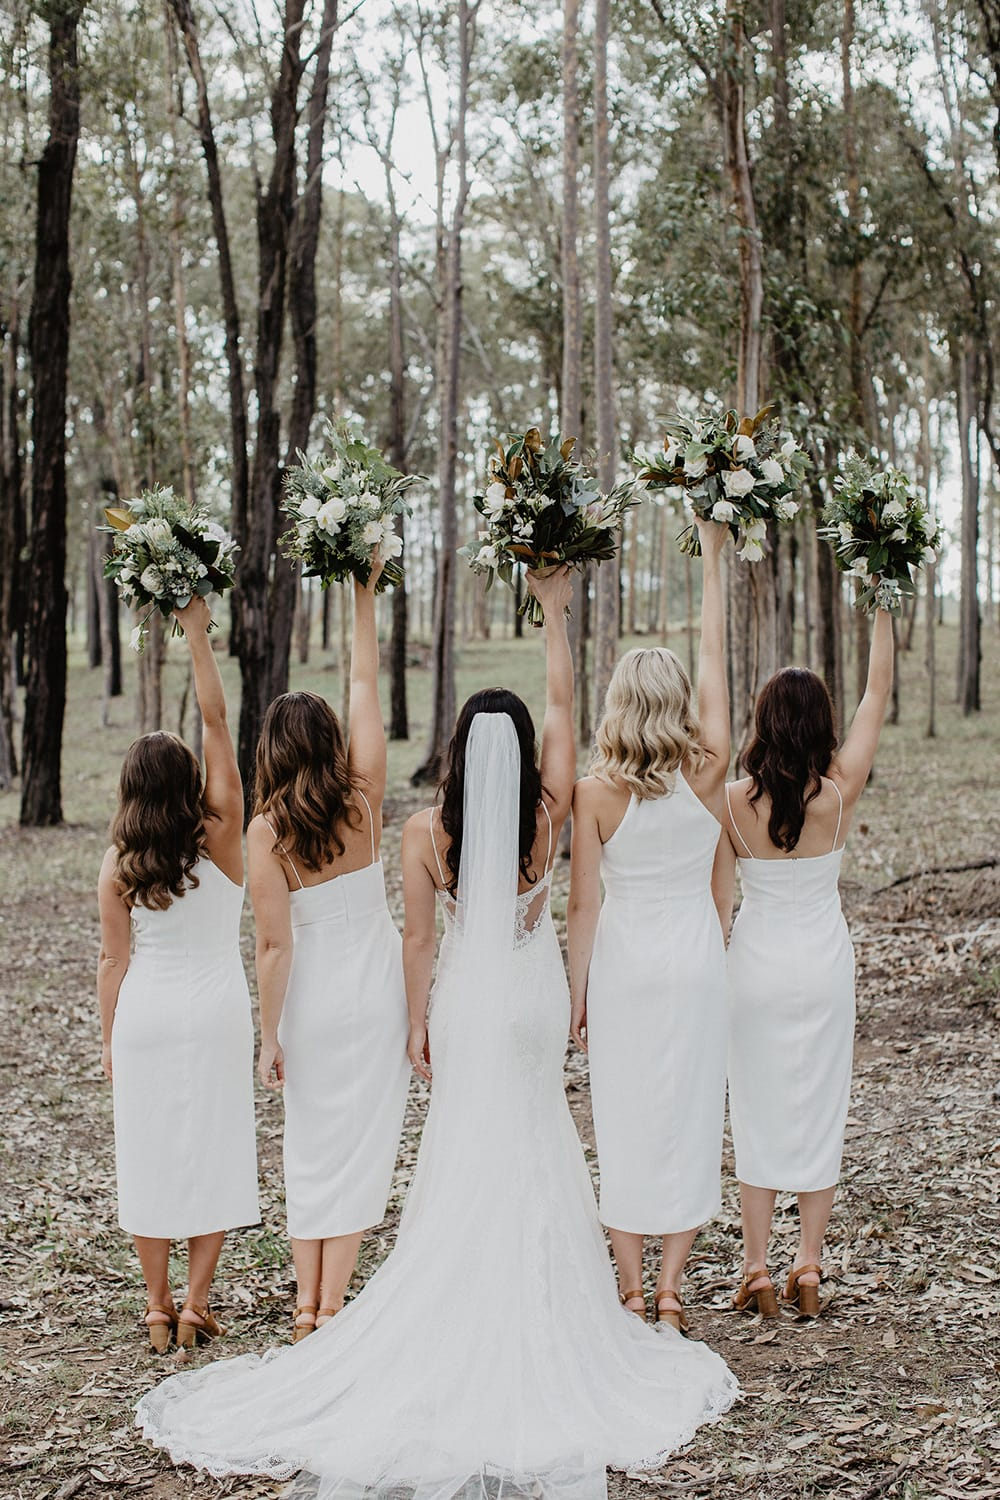 10 Fun Things to Do on Your Wedding Morning with Your Bridesmaids | Photography: Samuel Jacob Photography